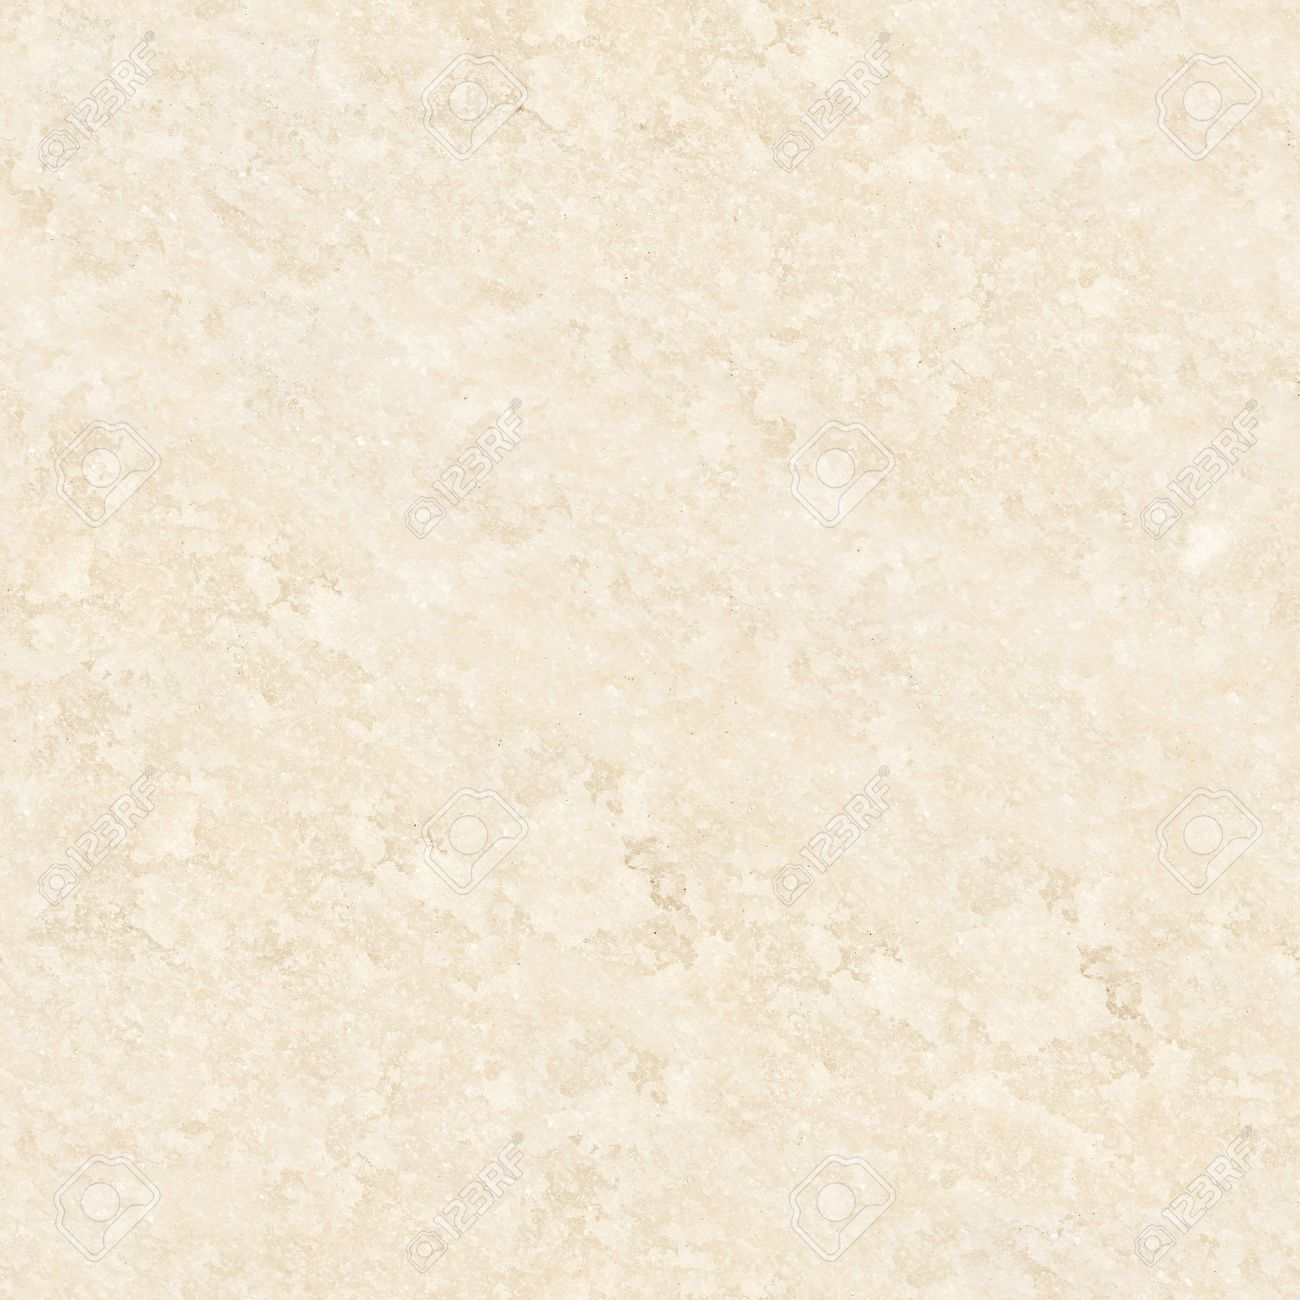 Seamless background from Beige marble tileable texture. Oversized photo. Stock Photo - 39831463